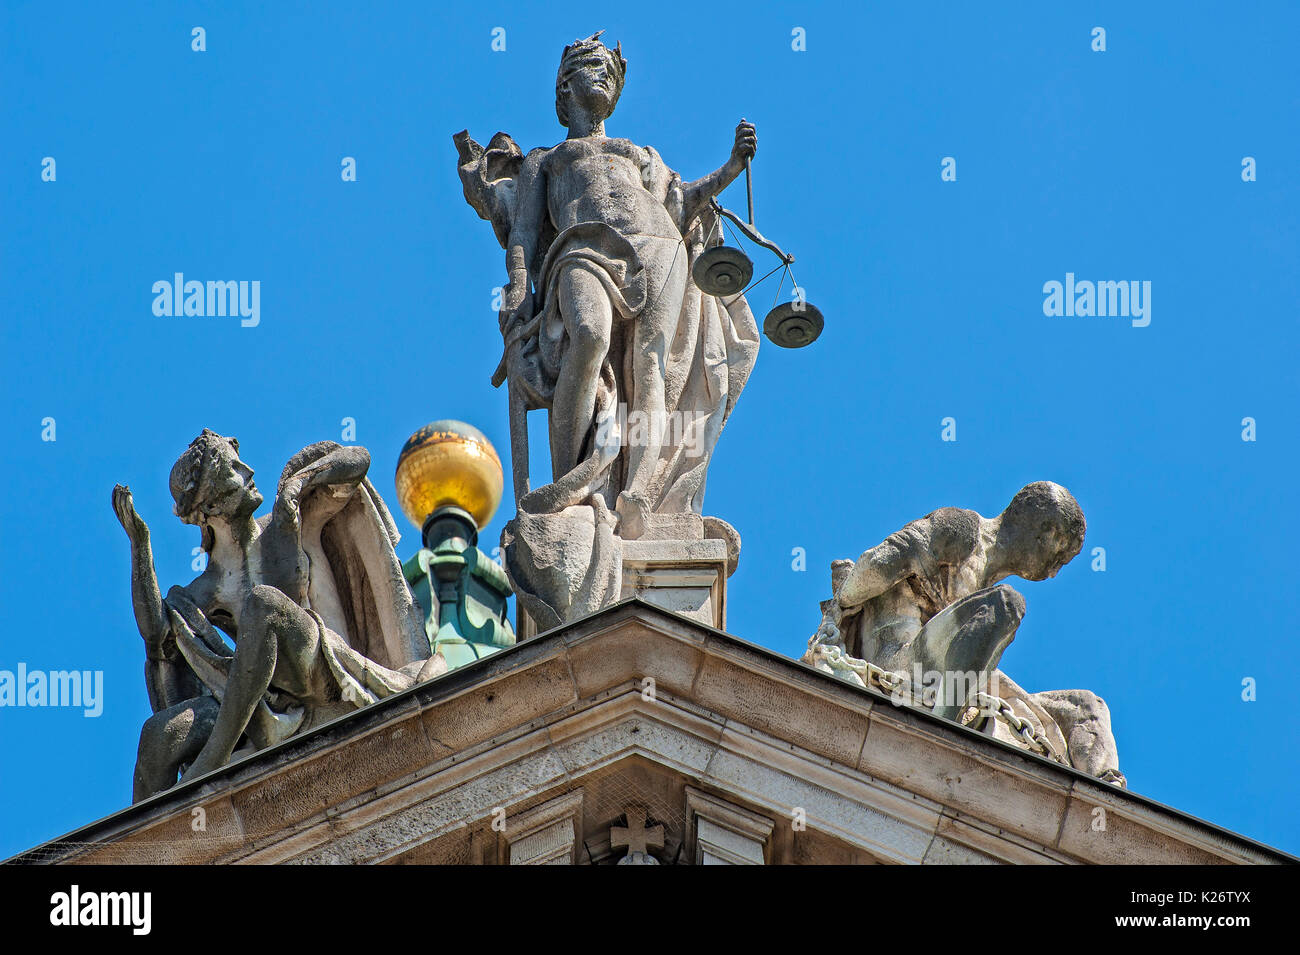 Gable with figure Justitia, figures of Innocence and vice of Balthasar Schmitt, Justice Palace, Munich, Upper Bavaria, Bavaria - Stock Image